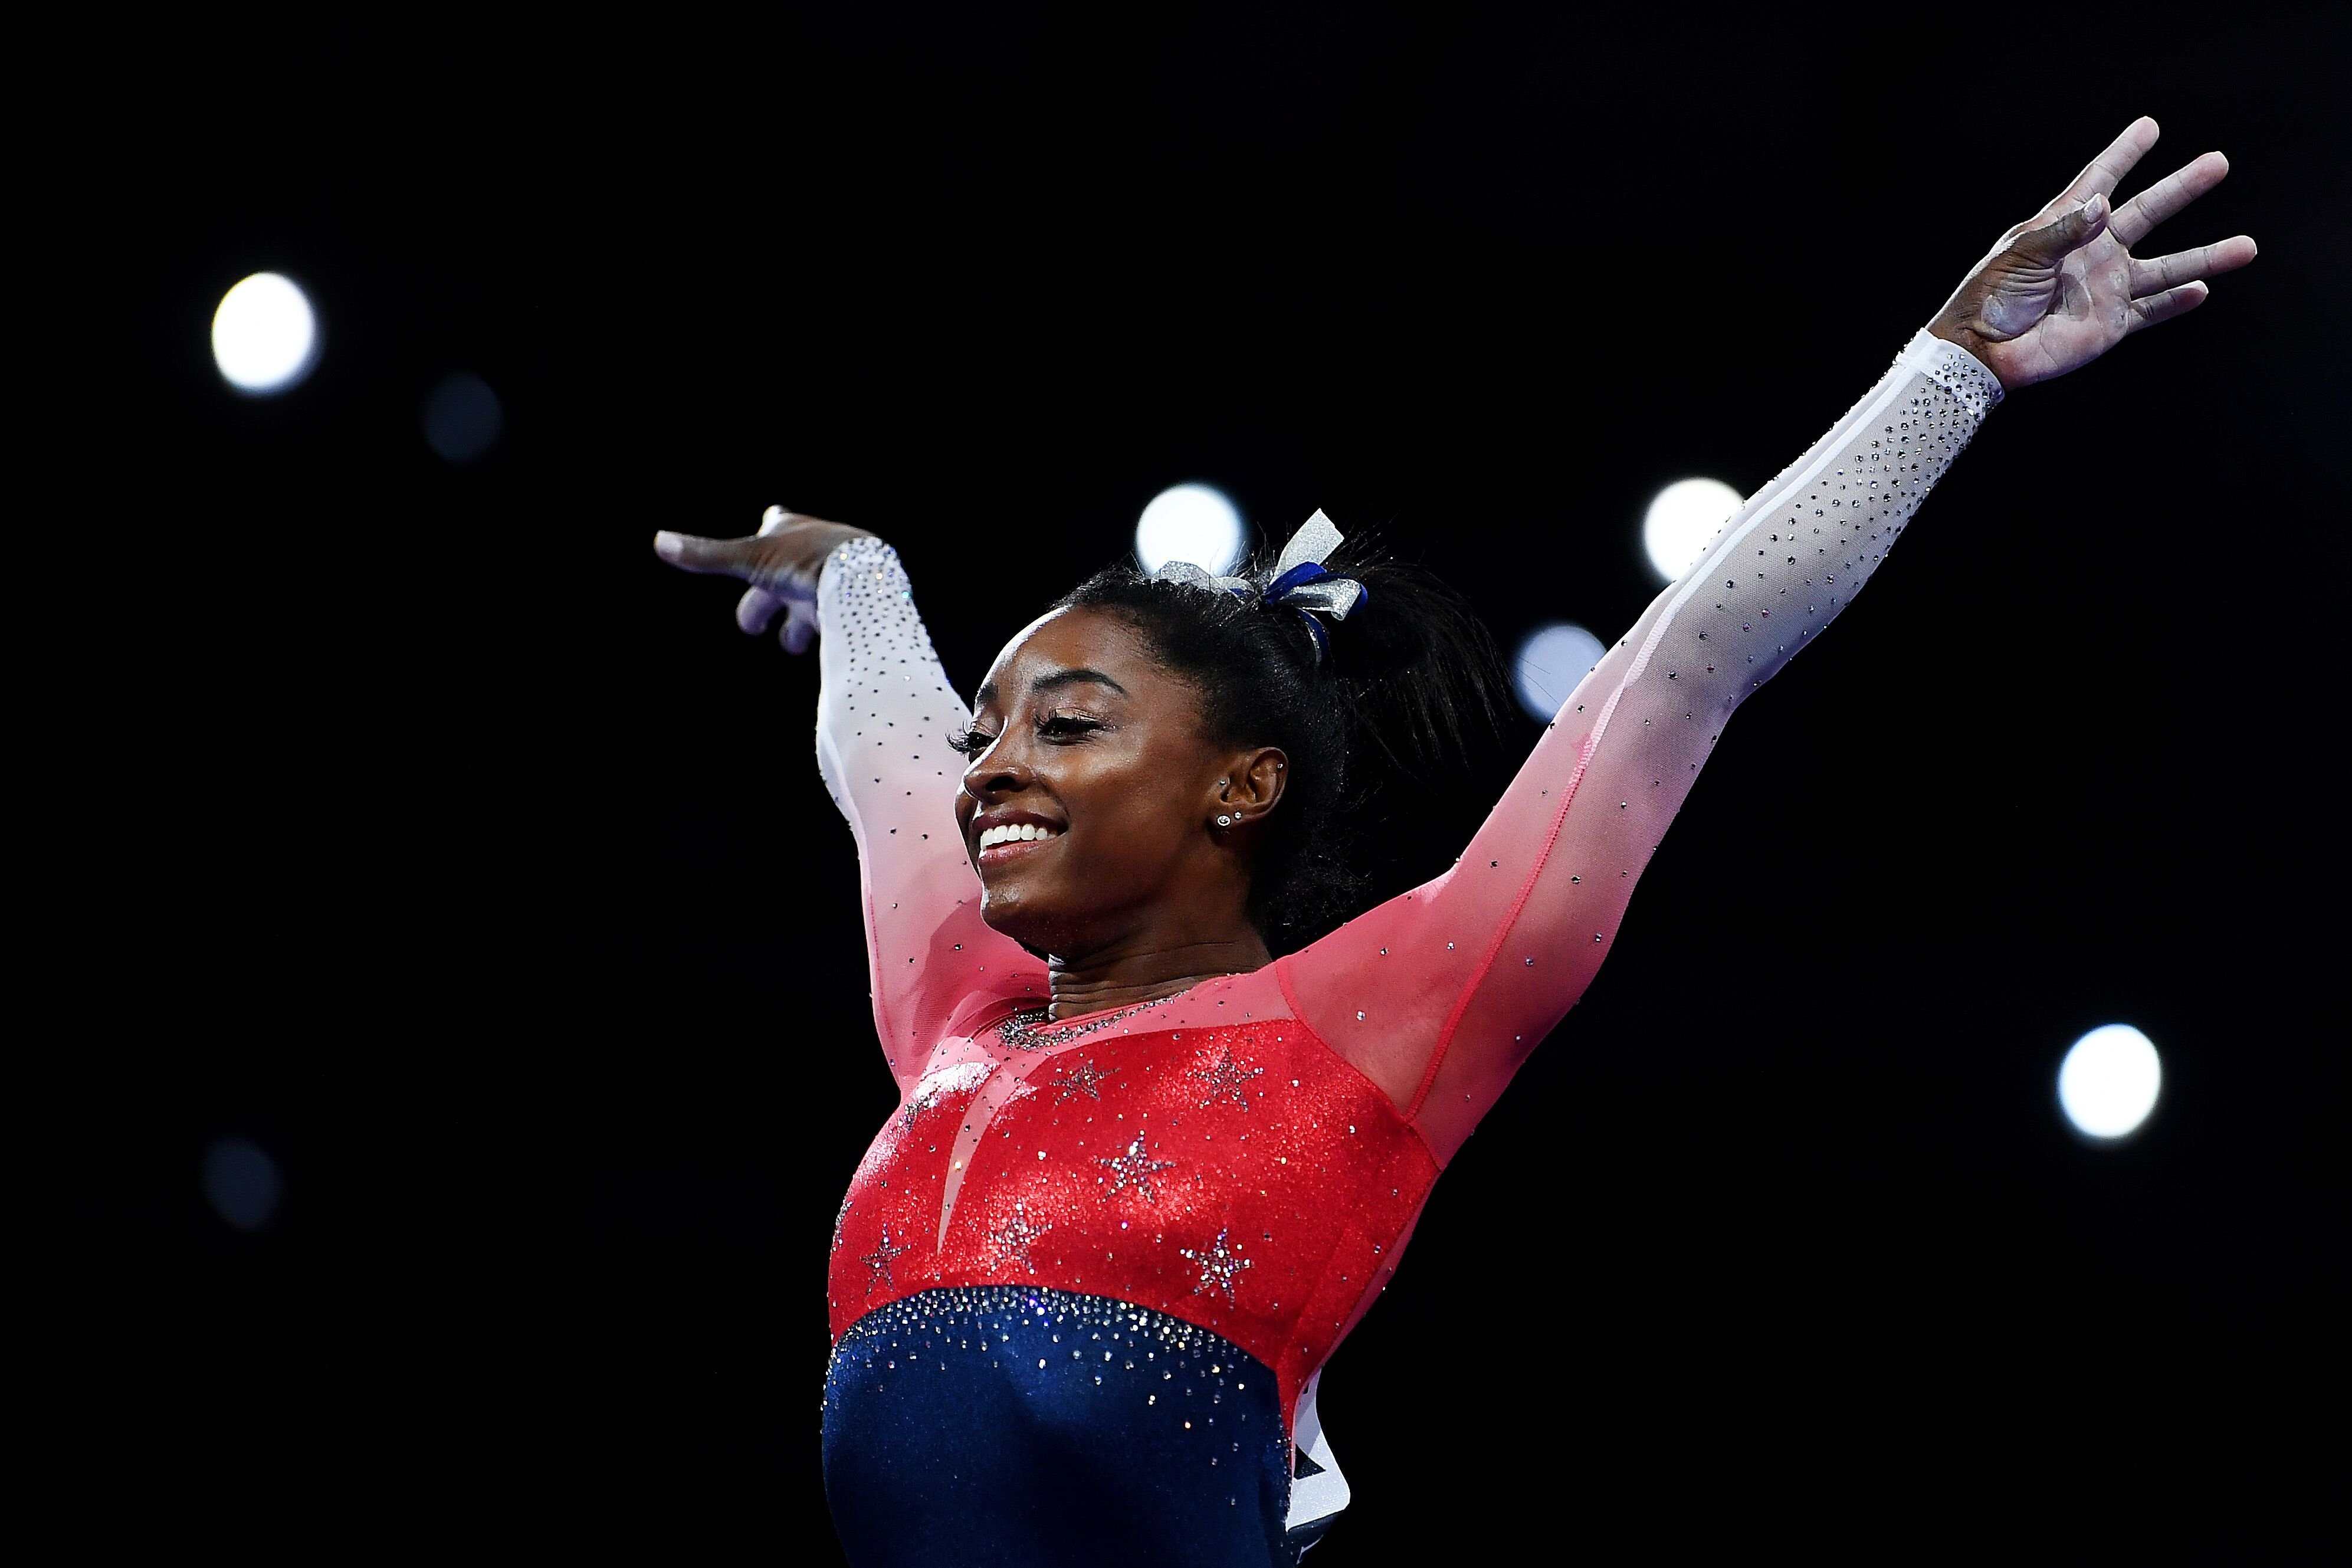 Simone Biles during the FIG Artistic Gymnastics World Championships on Oct. 08, 2019 in Germany   Photo: Getty Images